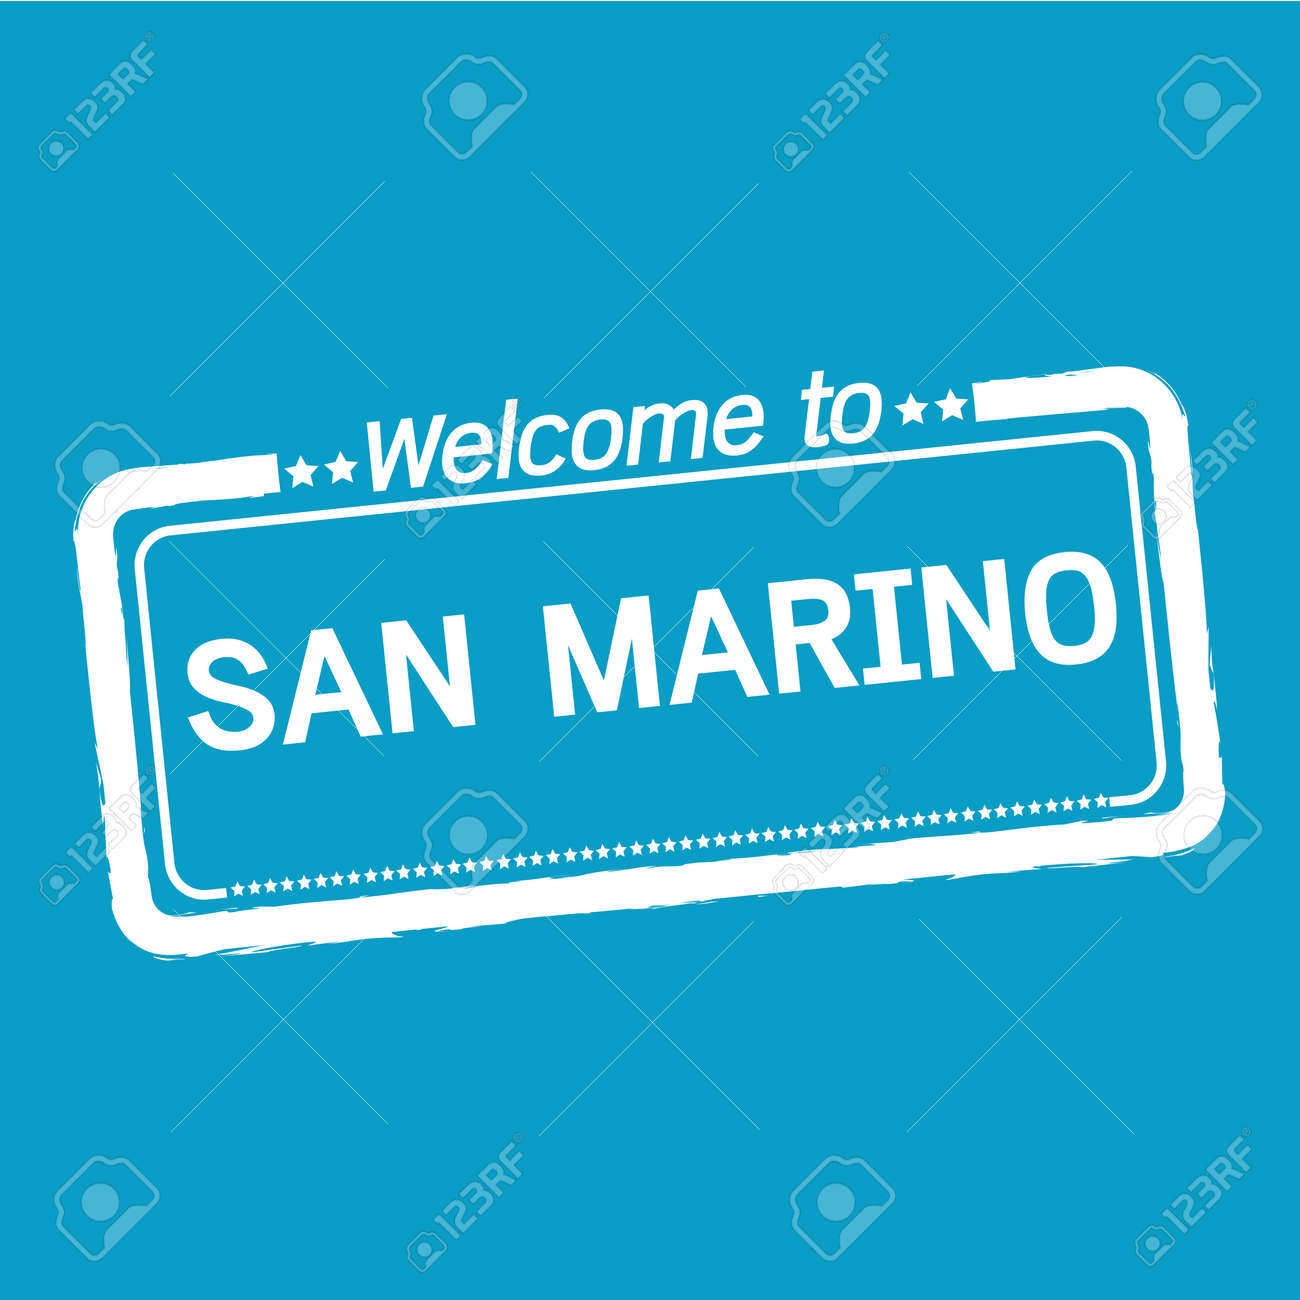 Welcome To SAN MARINO Illustration Design Royalty Free Cliparts ...